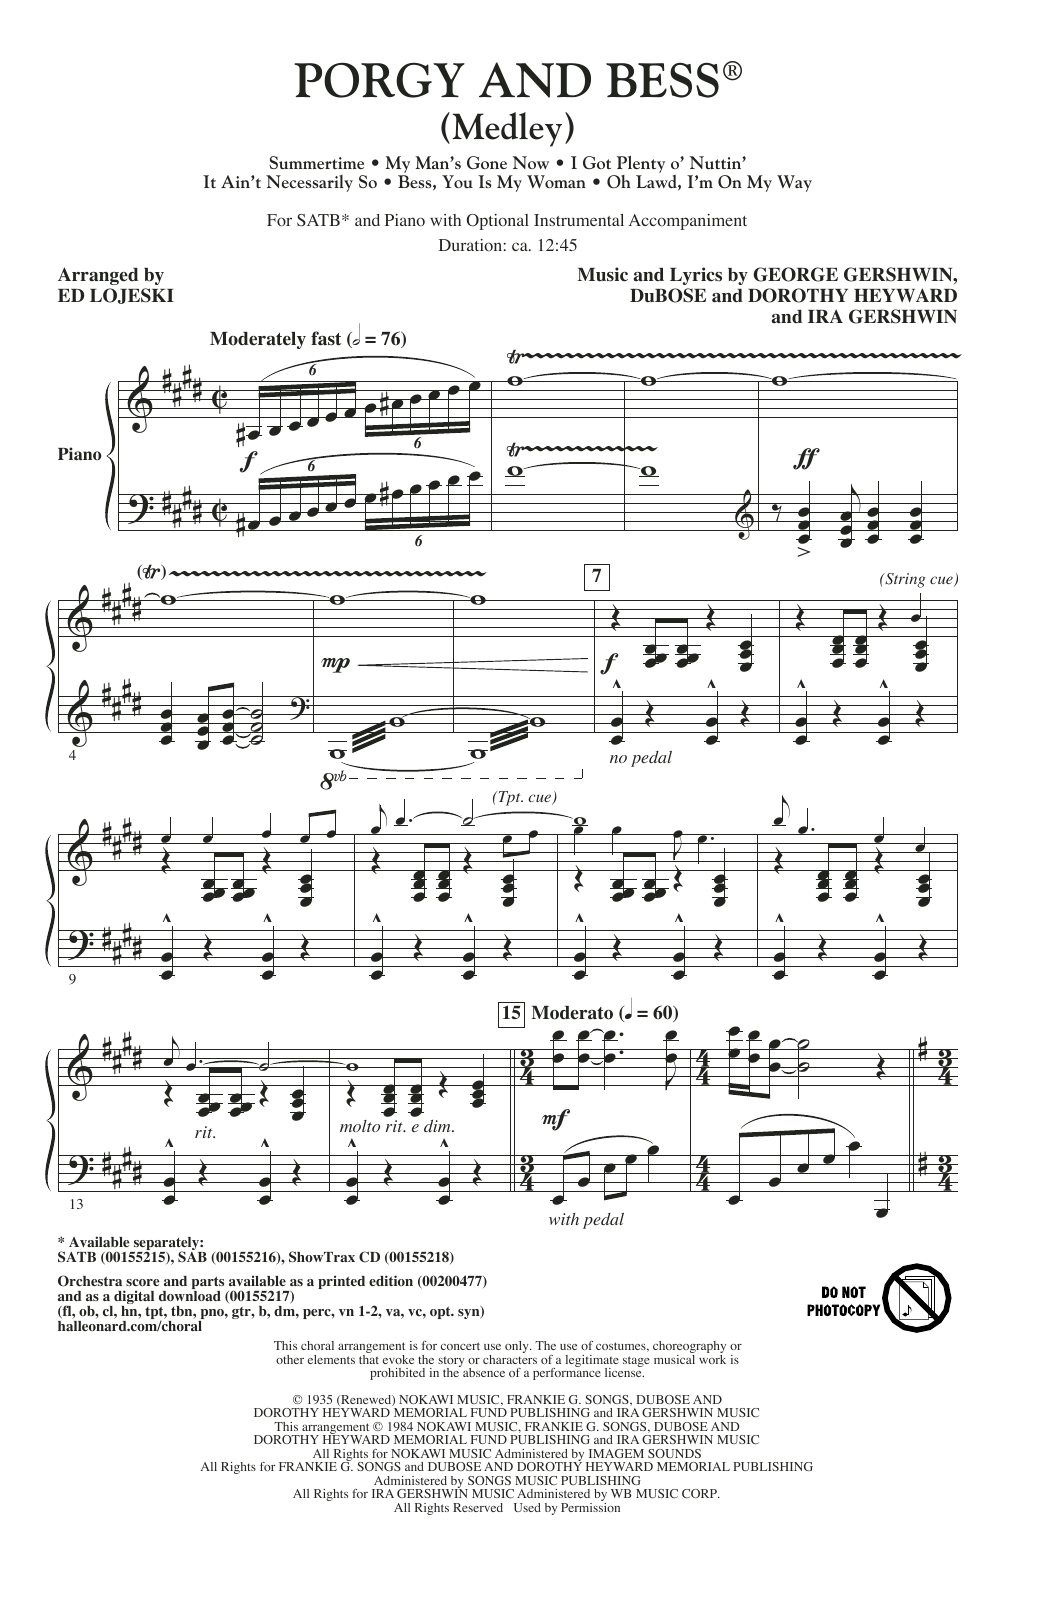 Ed Lojeski Porgy And Bess (Medley) sheet music notes and chords